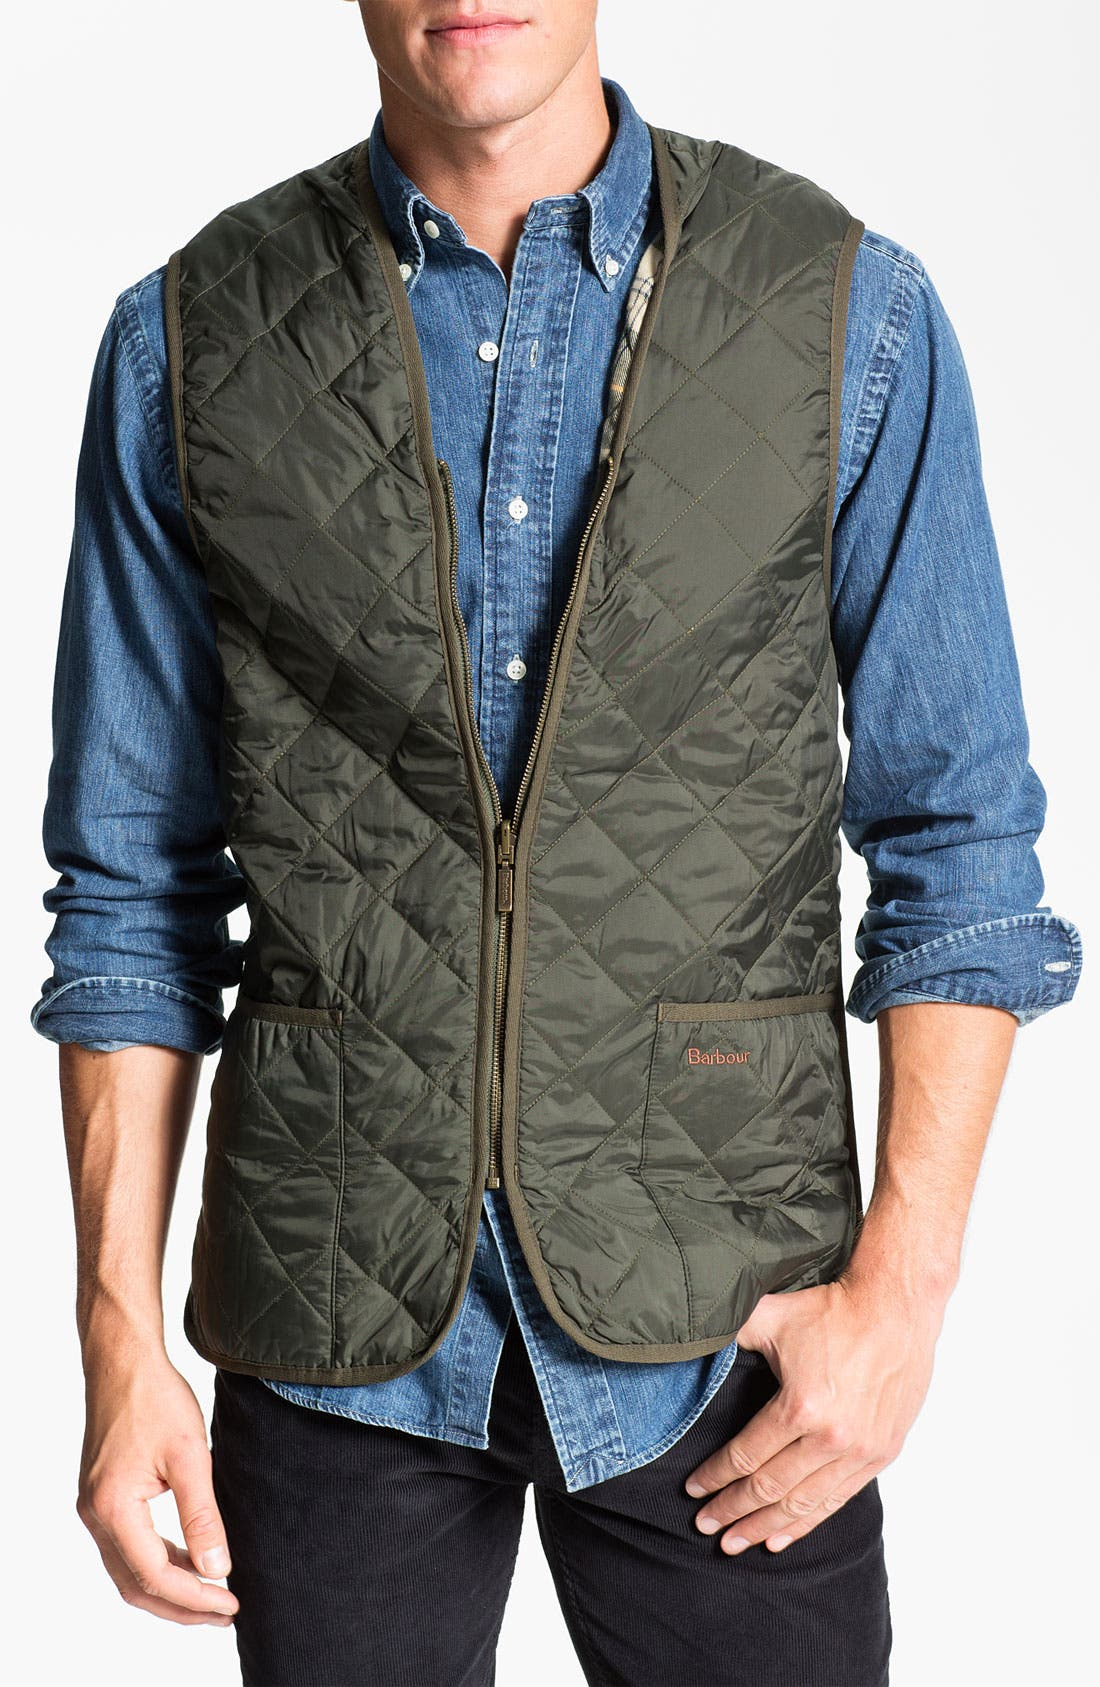 Alternate Image 1 Selected - Barbour Quilted Zip-In Liner Vest